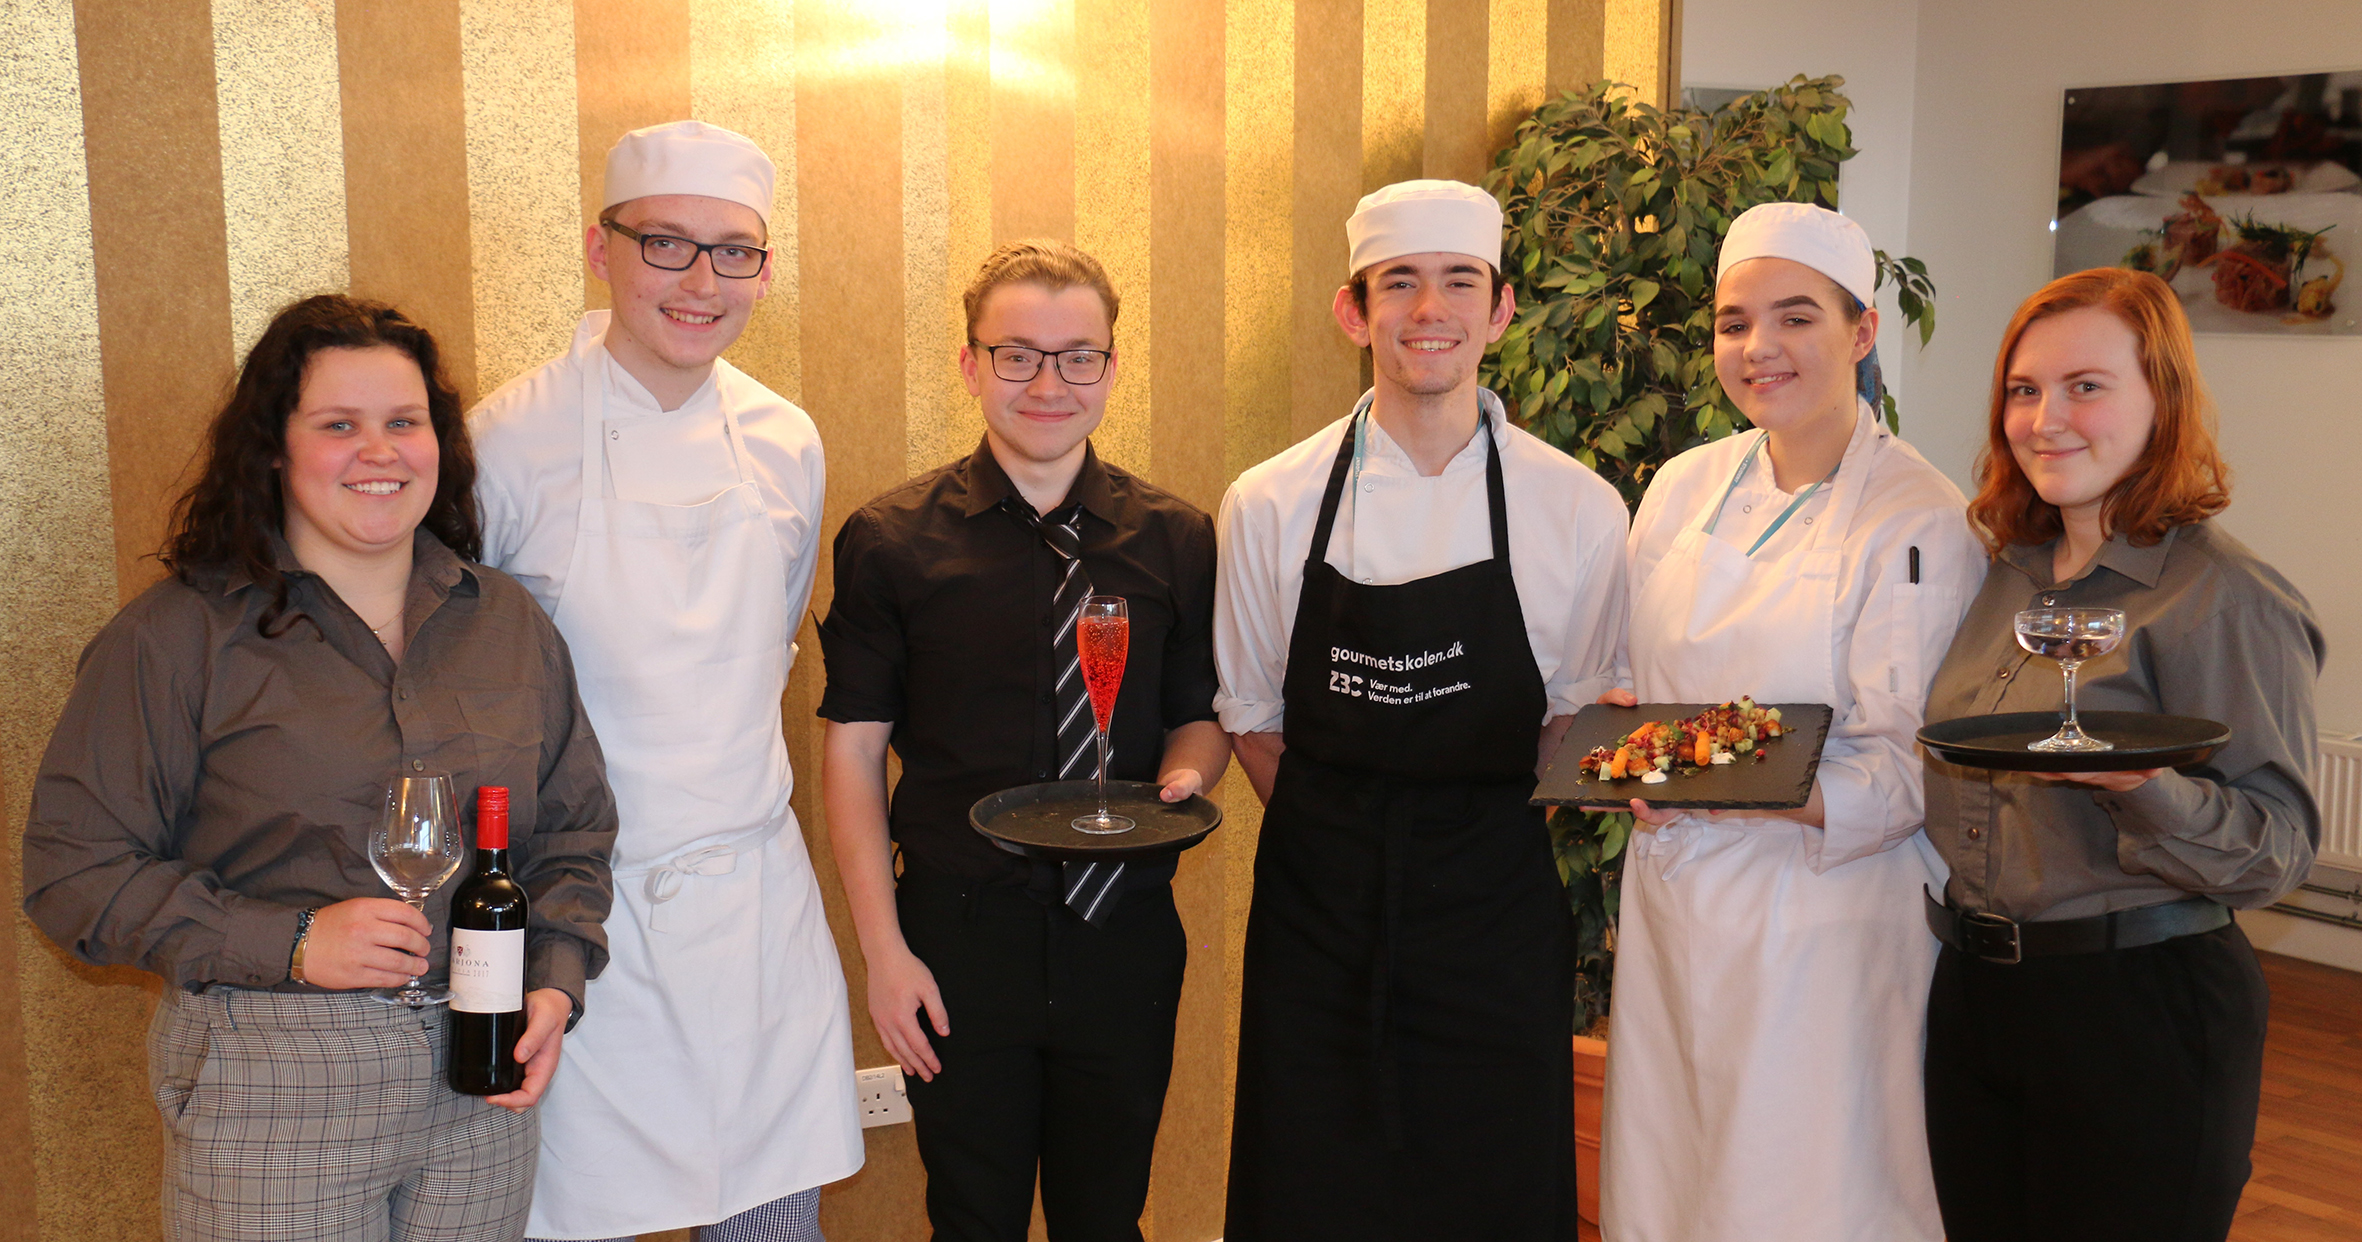 Chefs bow out in style with fellow hospitality students